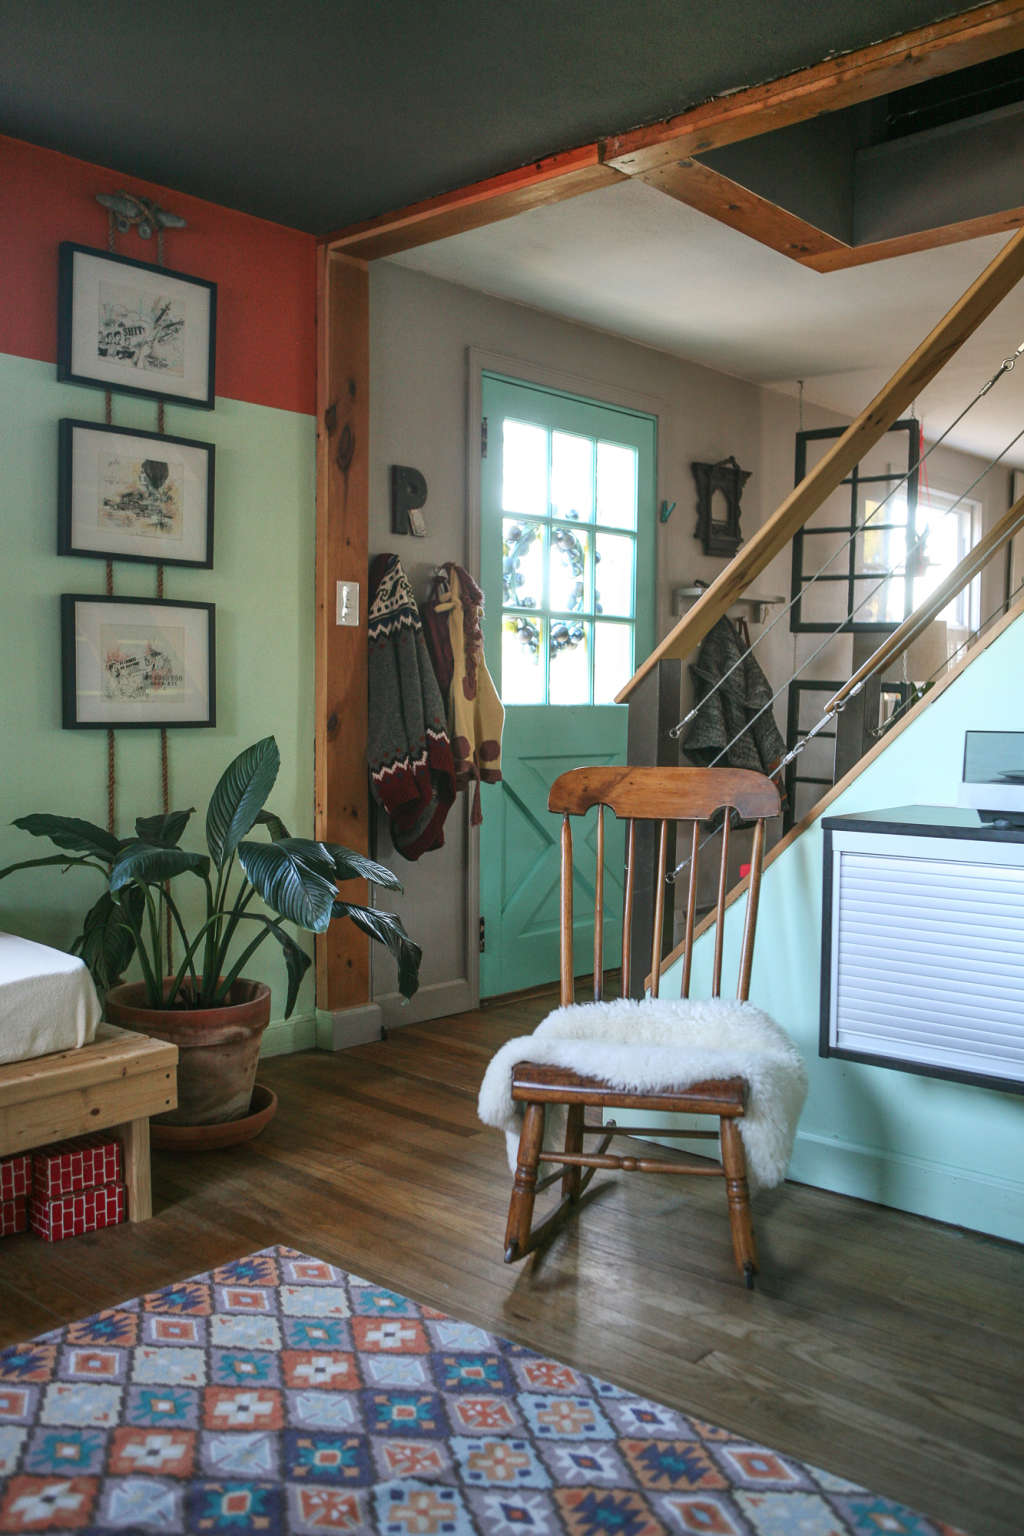 House Tour: Jill & Dan's Lighthearted Home